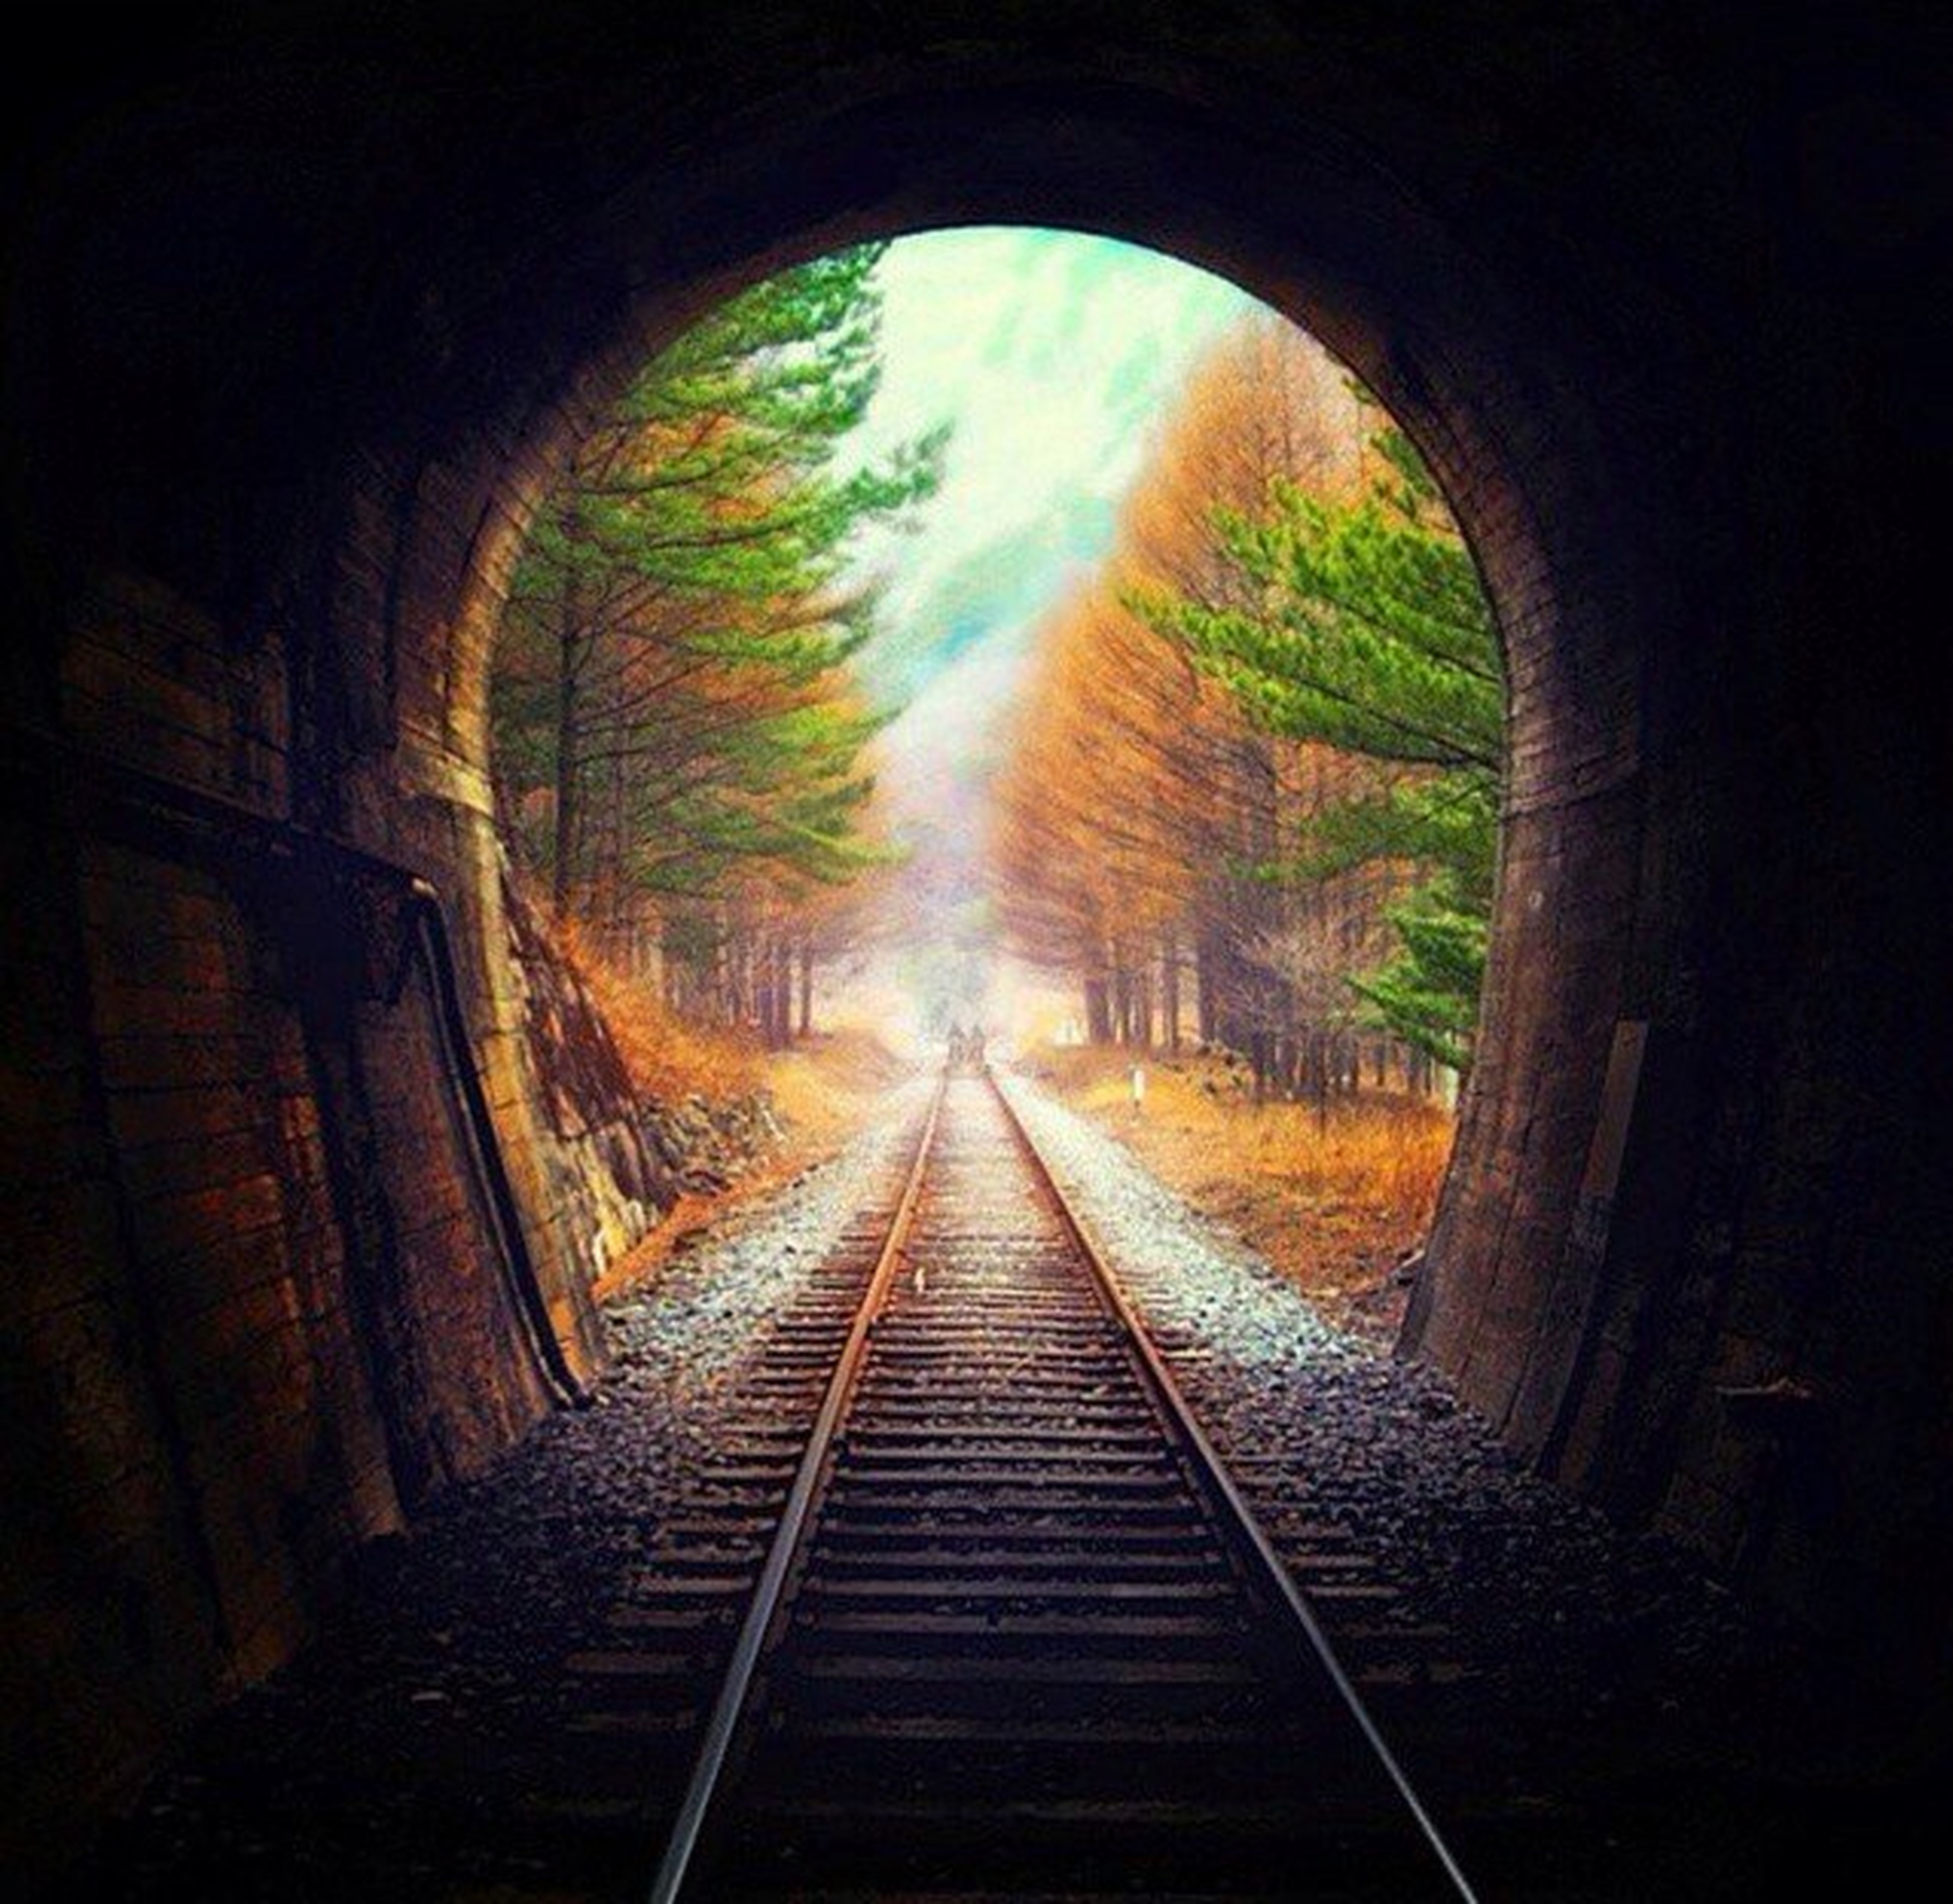 the way forward, arch, transportation, tree, tunnel, indoors, diminishing perspective, railroad track, vanishing point, built structure, rail transportation, architecture, no people, sky, nature, day, archway, tranquility, forest, public transportation